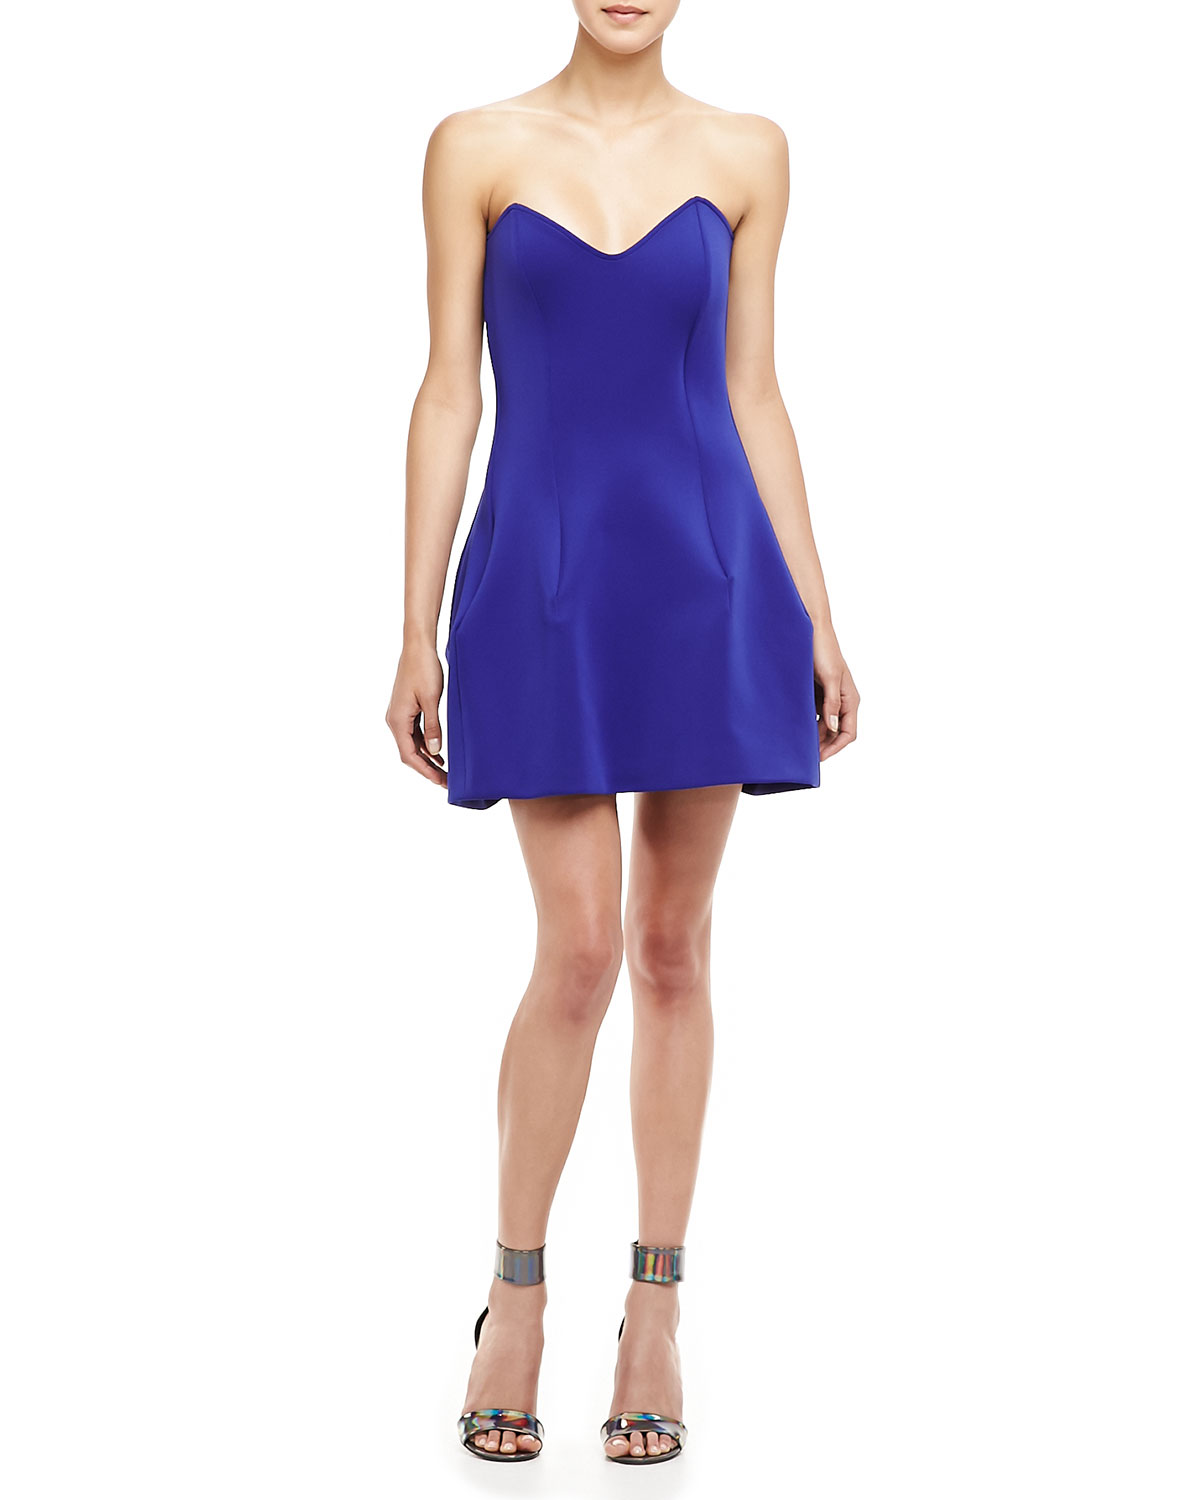 Boulee blue sweetheart-neckline strapless Ivy dress ($231)